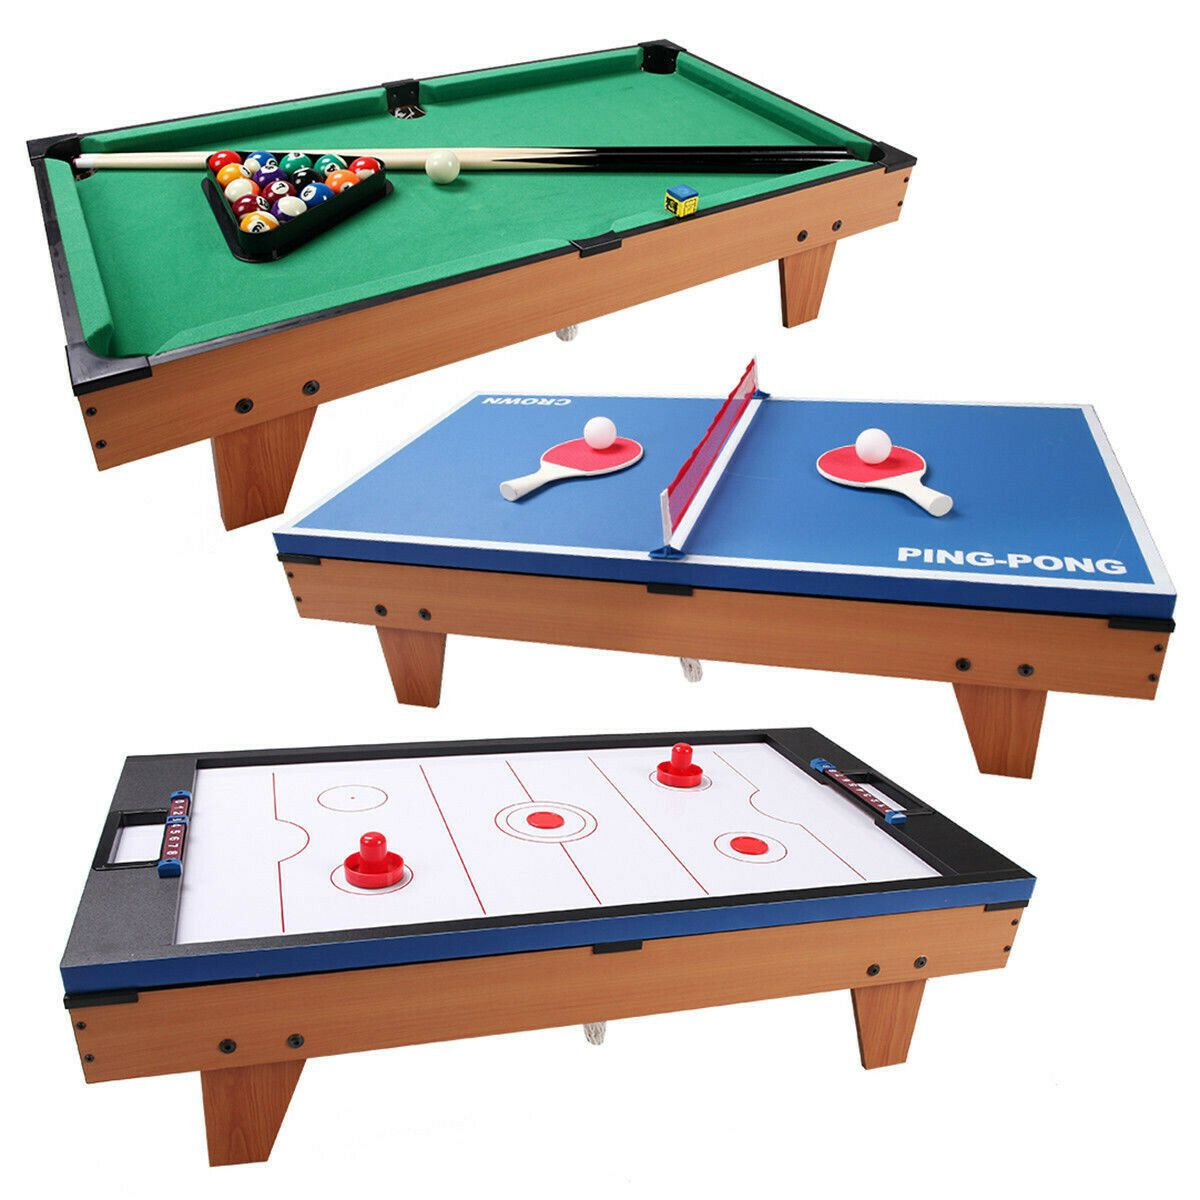 Indoor Game Air Hockey Ping Pong Billiard Multi Functional Sports 3 In 1 Table 103 93 Air Hockey Table Ideas Of Air In 2020 Air Hockey Multi Game Table Billiards